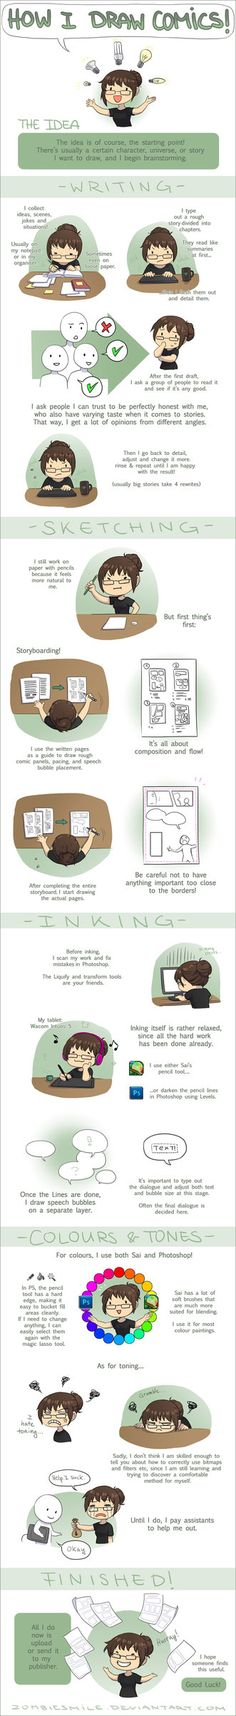 Tutorial: How to Draw Comics  Repinned by SupervilleComics.com